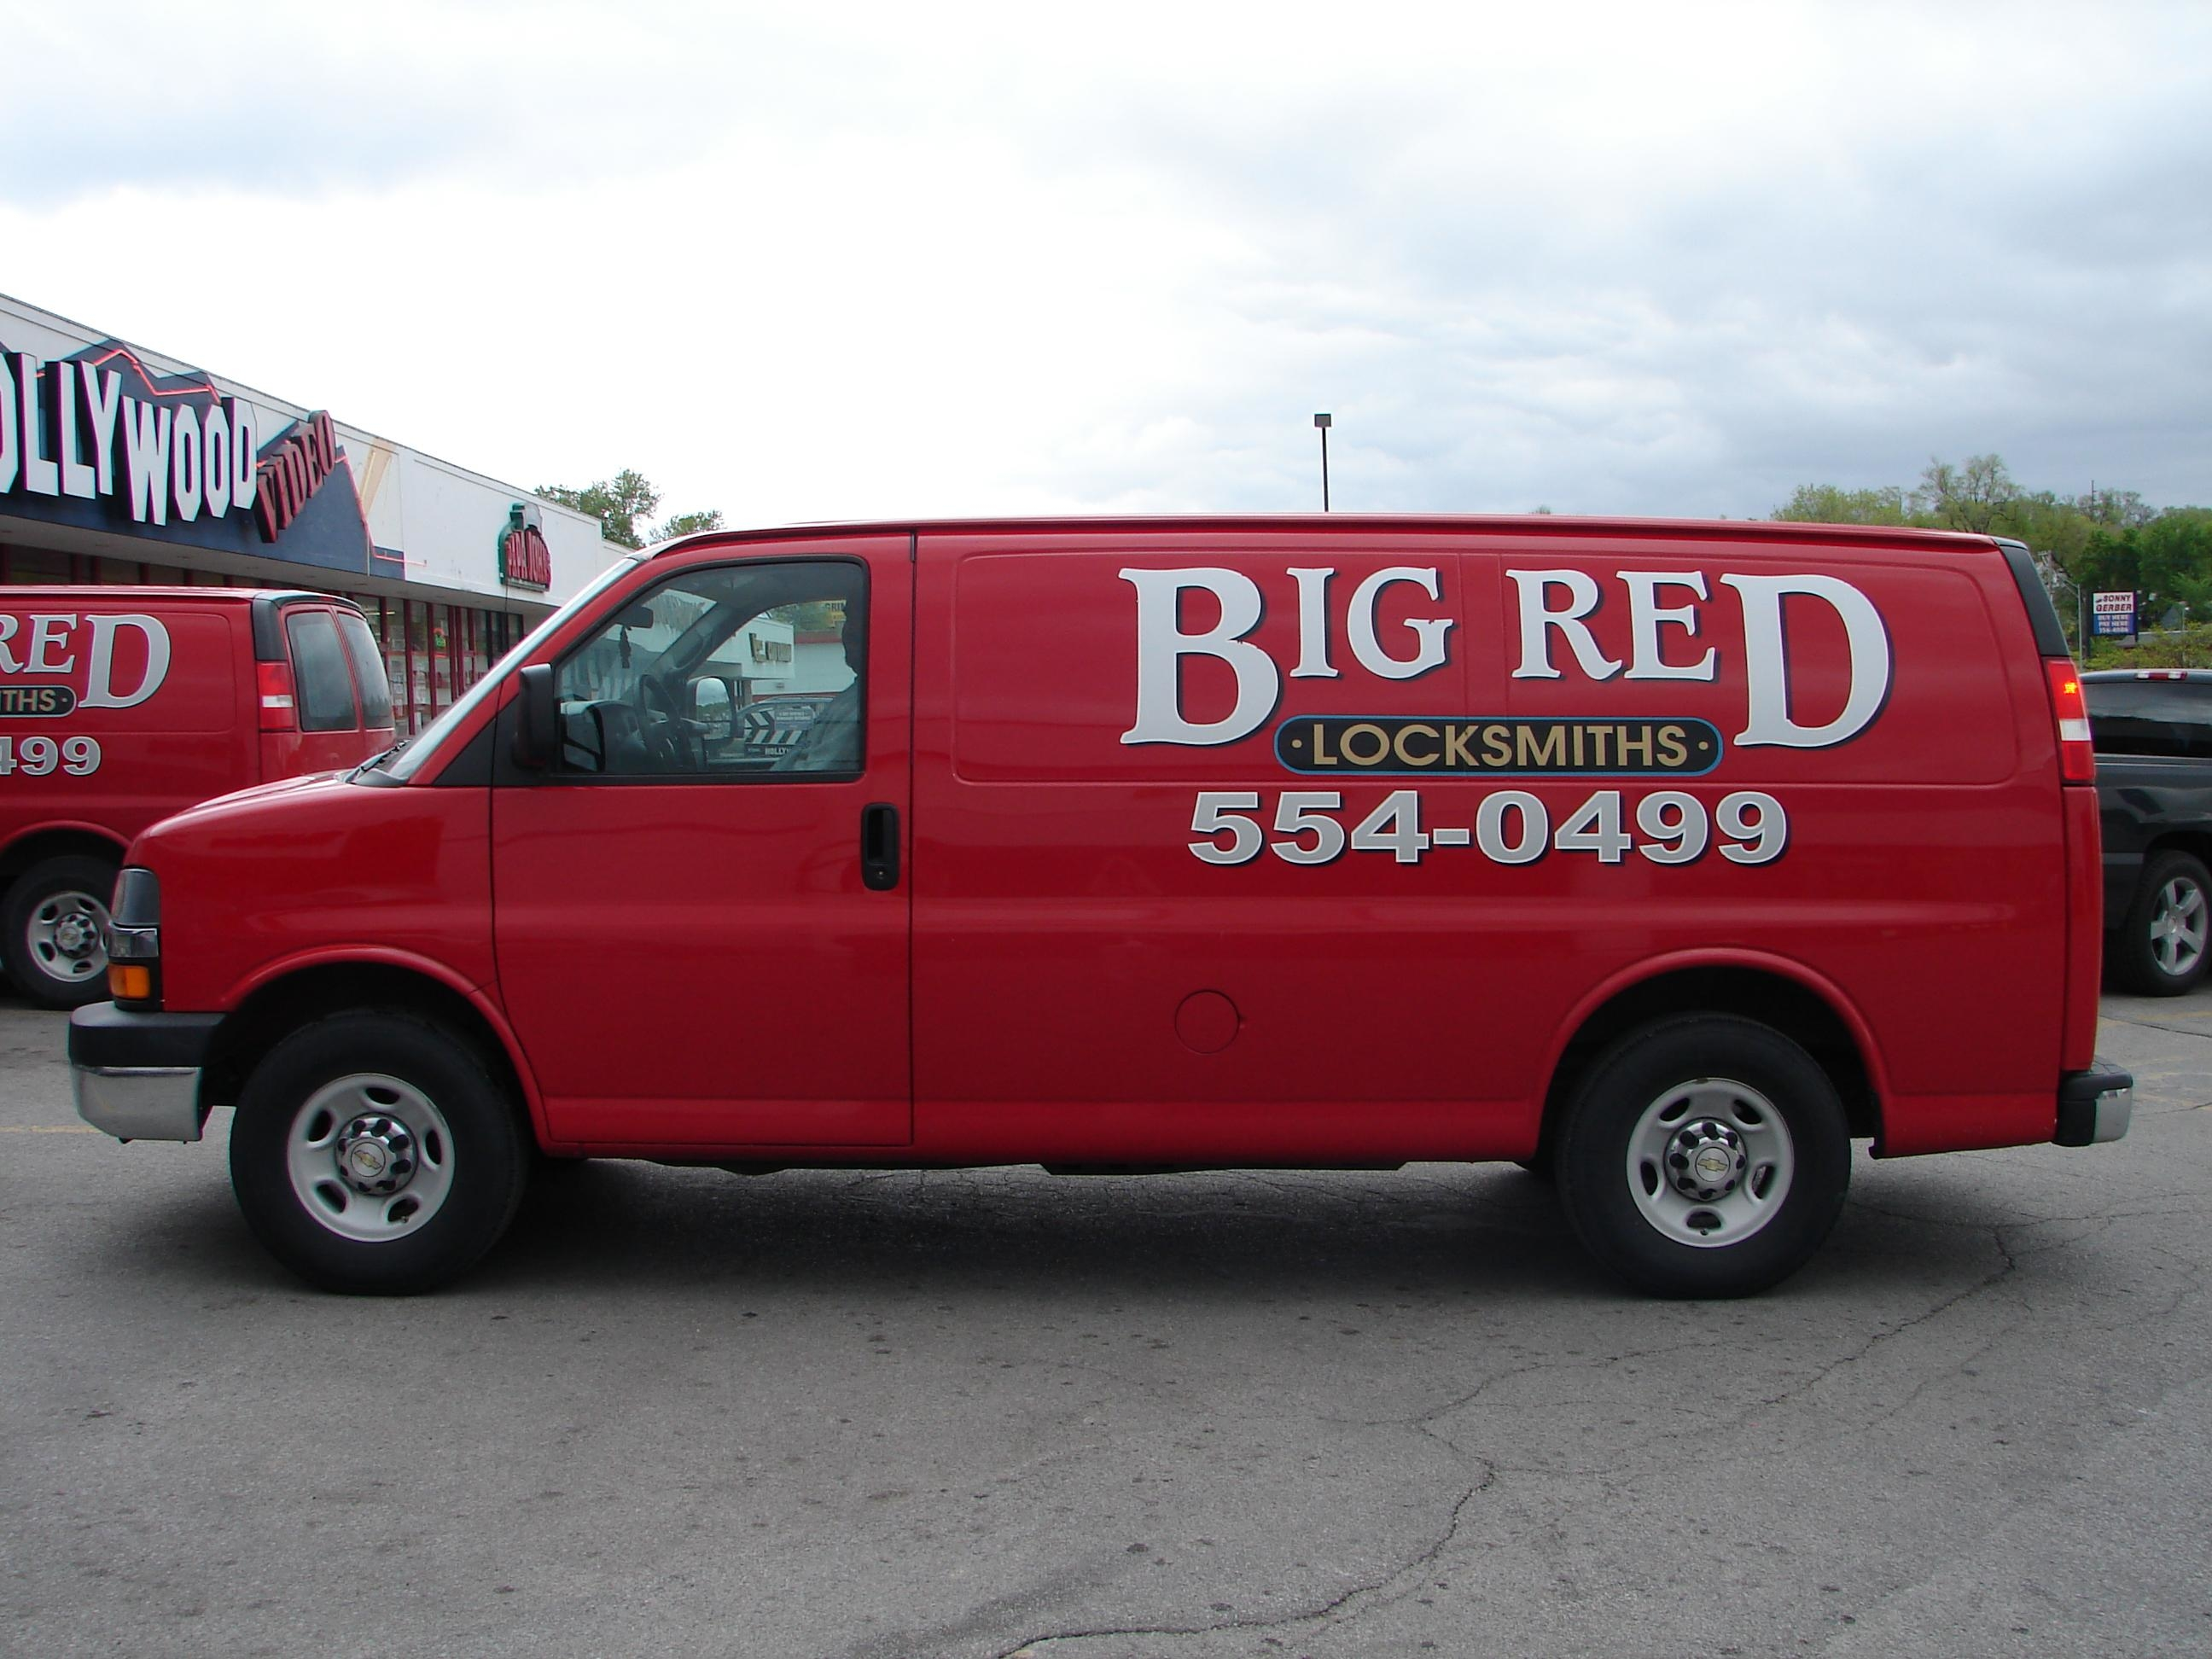 Big Red Locksmiths In Bellevue Ne 68005